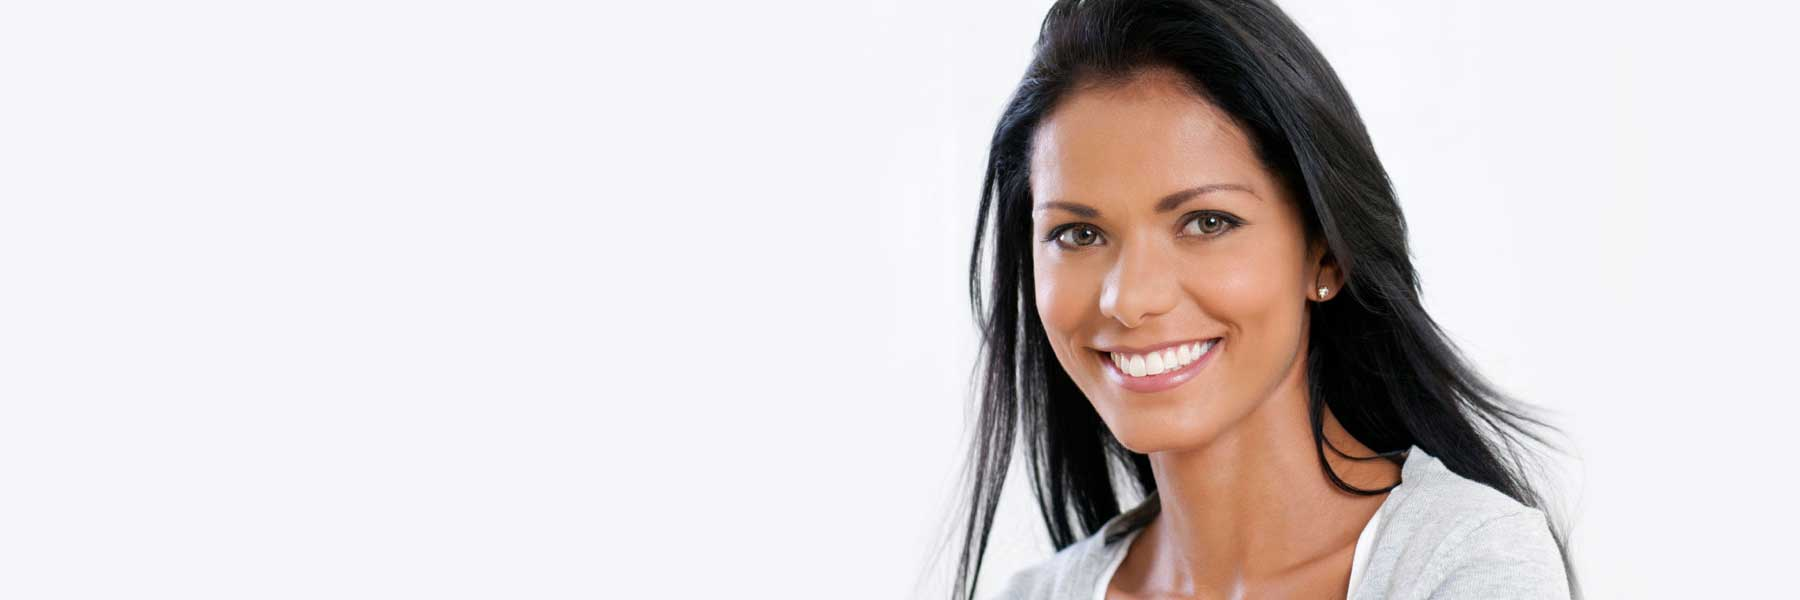 Periodontal Treatment (Perio Protect) in Edina MN banner image